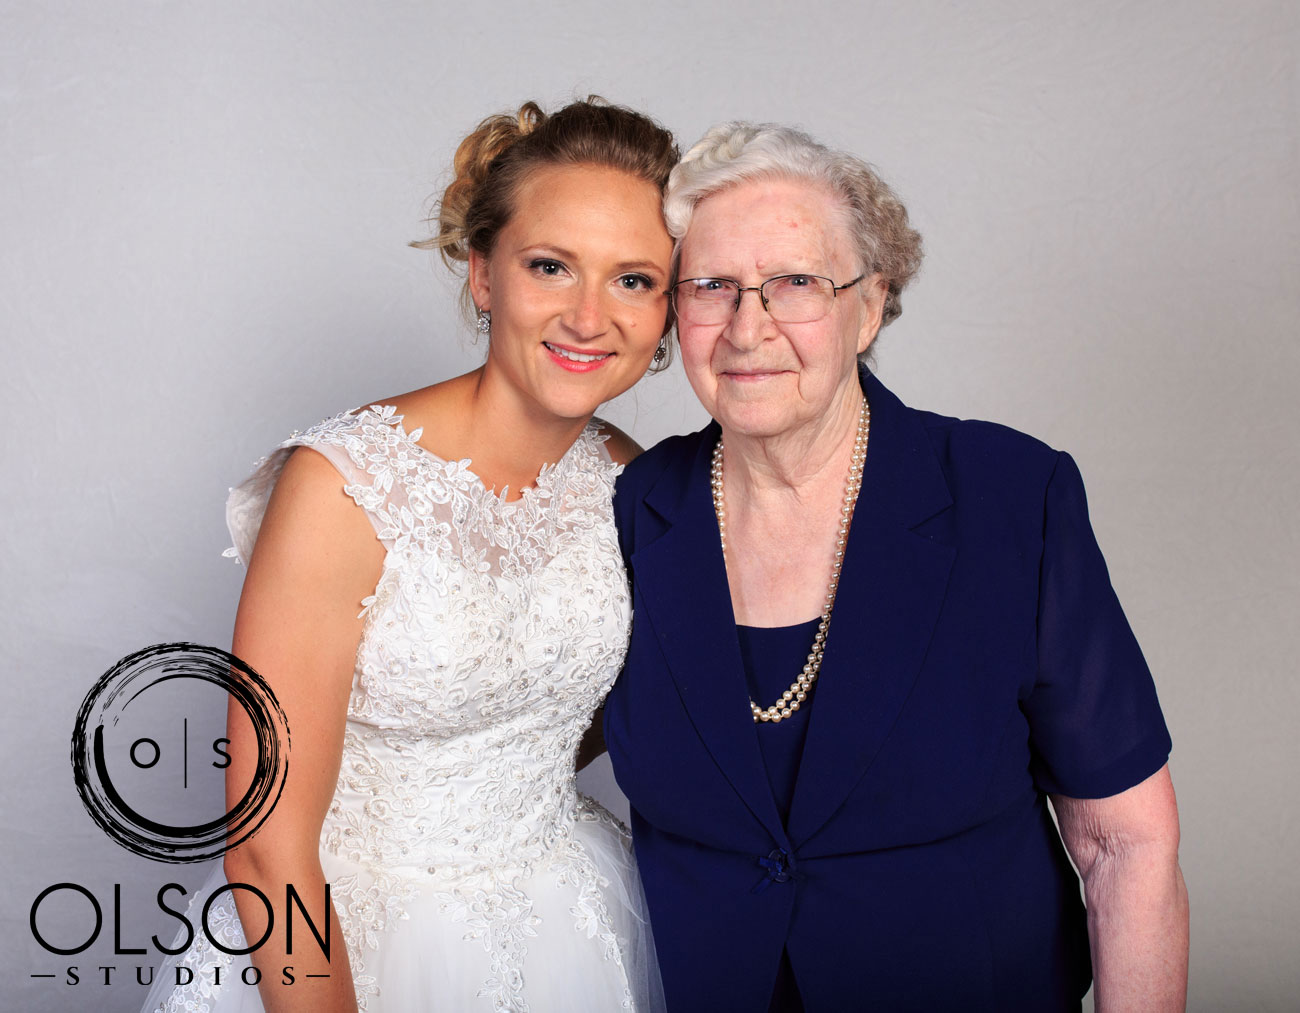 Robin & Alysse - Photo Booth - Wedding Photography - Red Deer & Calgary Alberta (16)